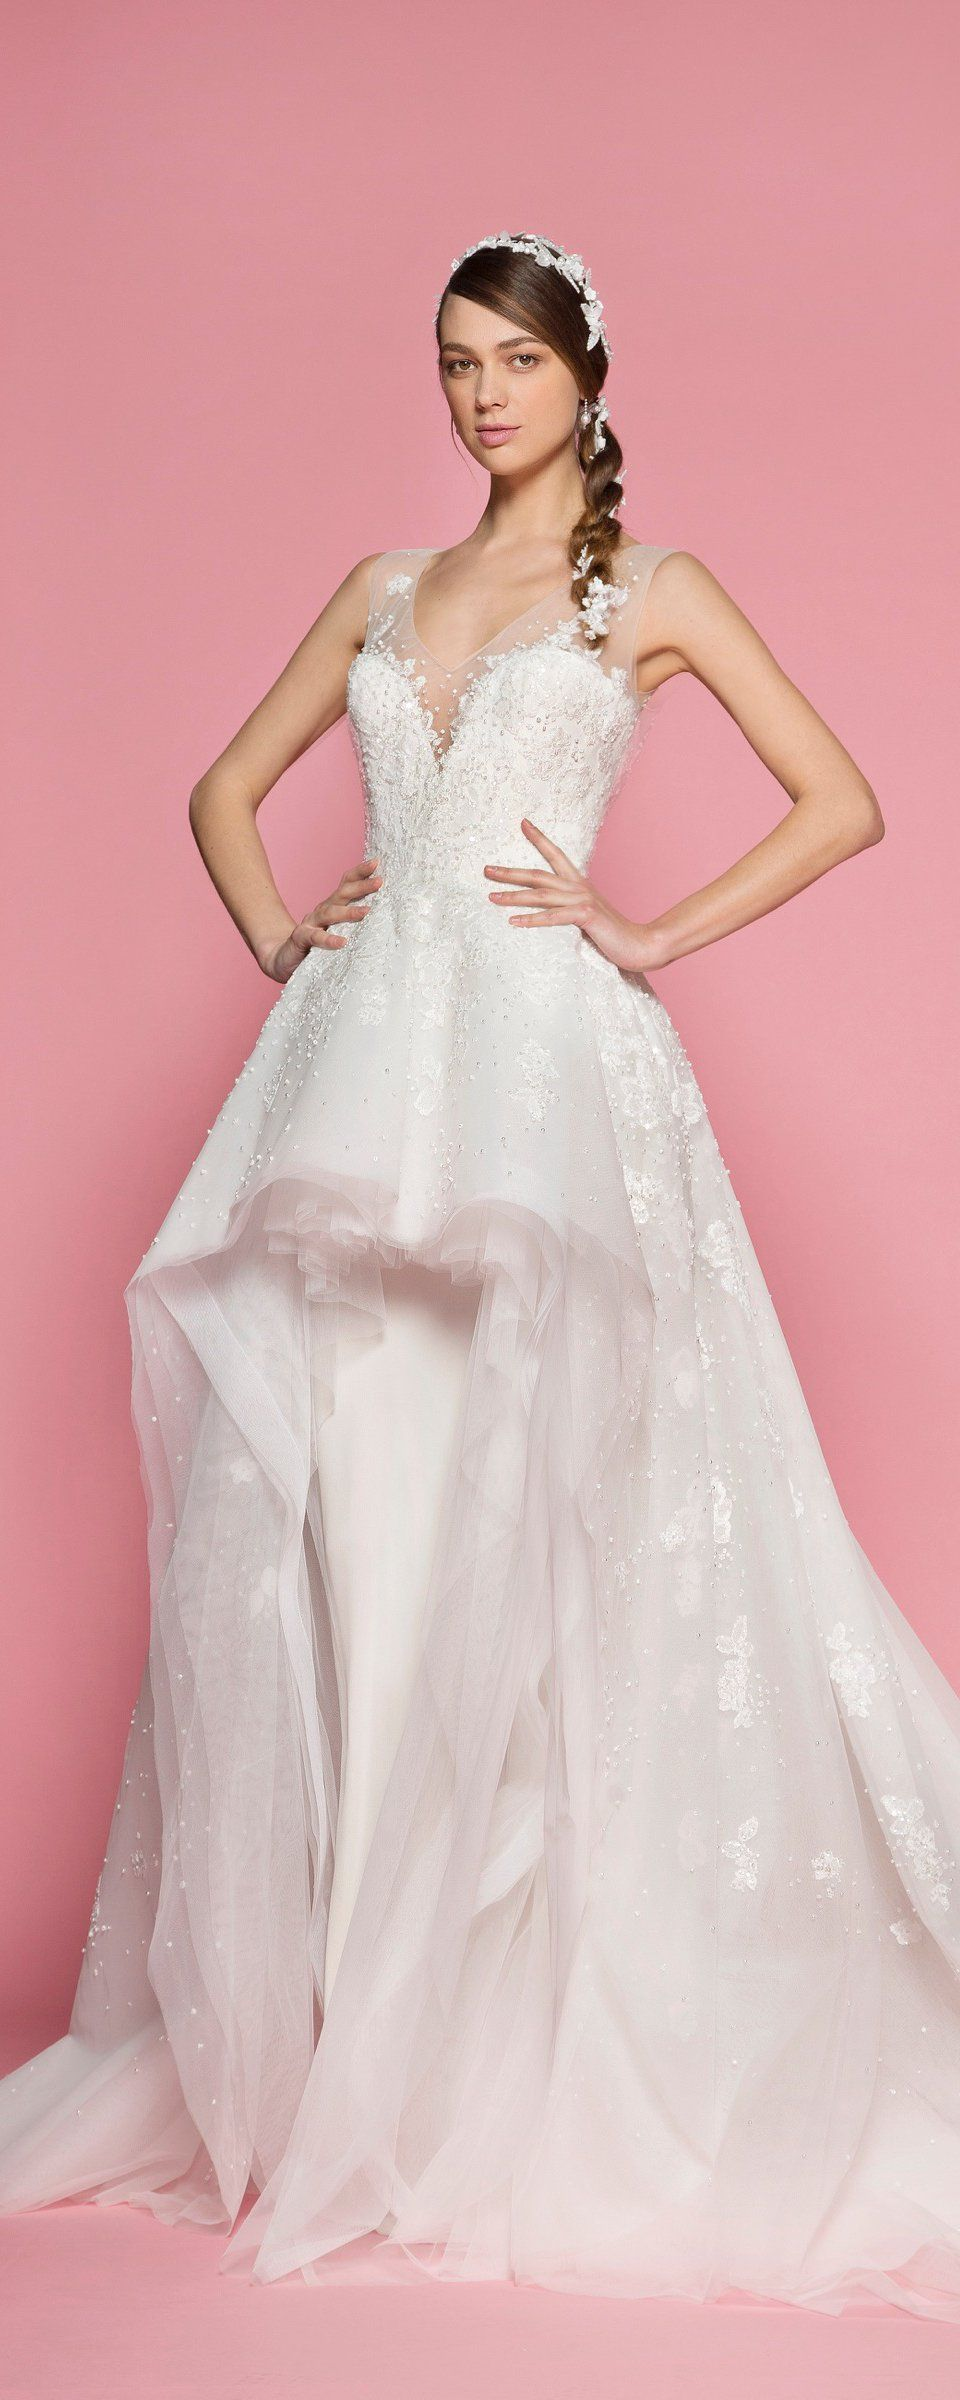 Georges hobeika wedding dresses 2018 plus